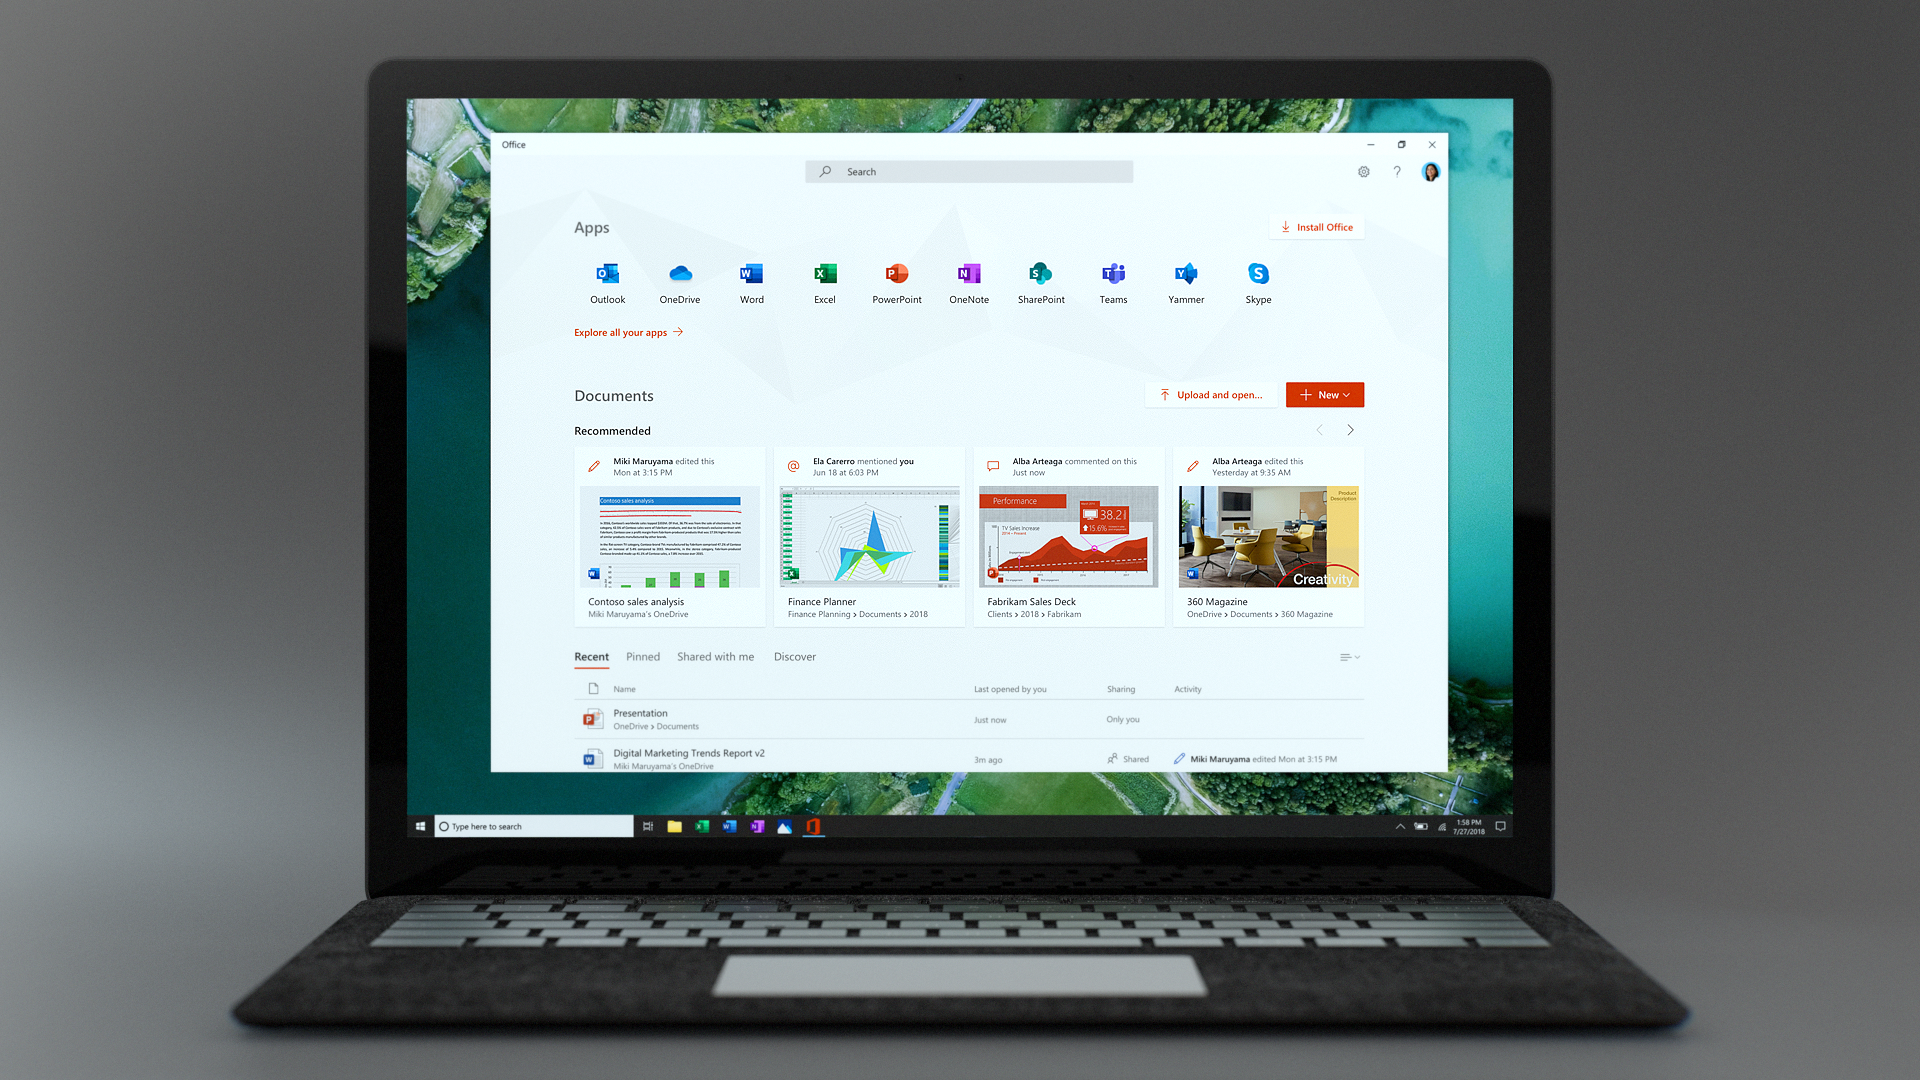 Image of a laptop open showing the new Office app on its screen.